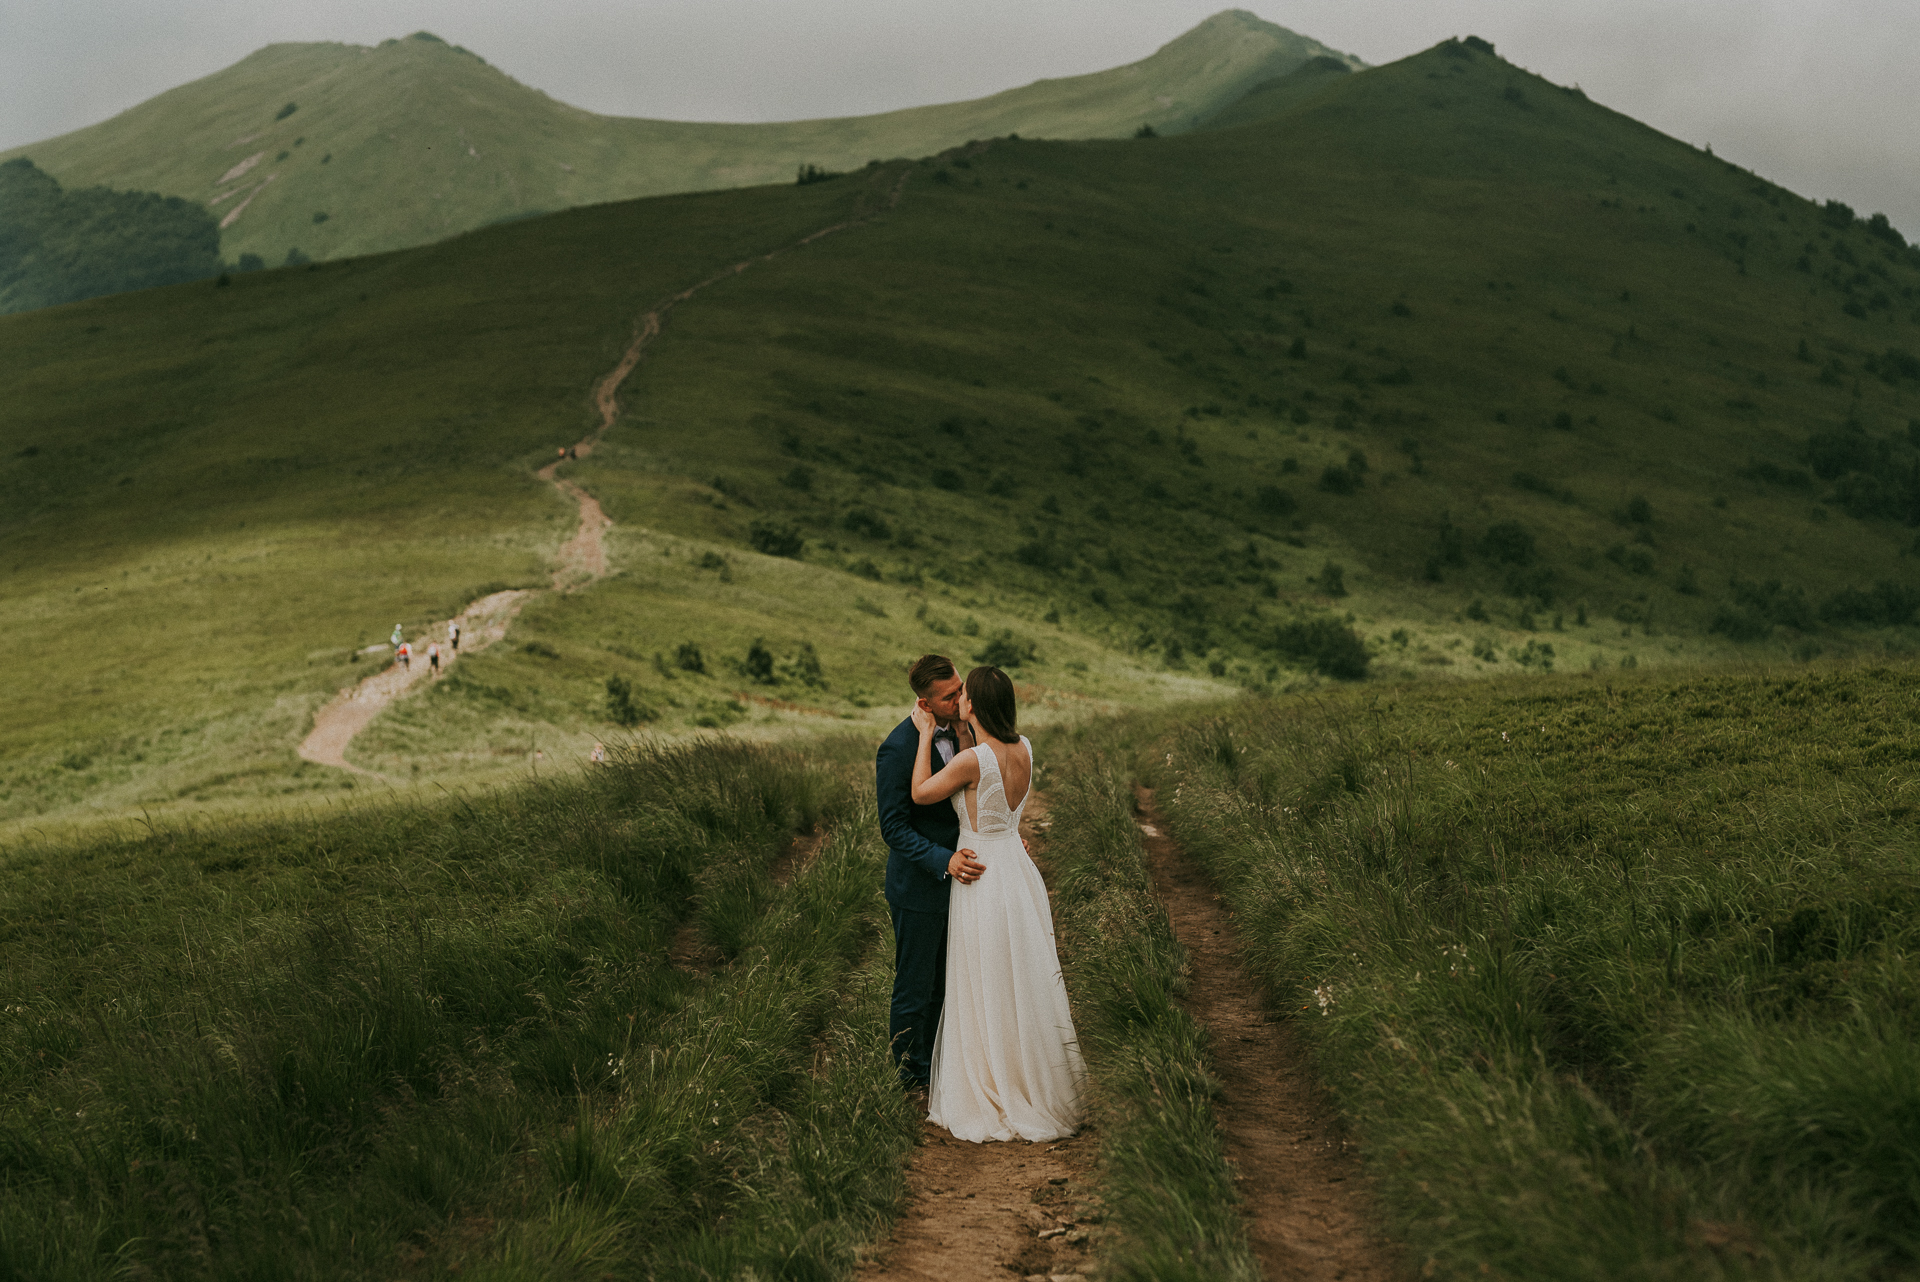 Bridal_mountains_bieszczady_photography